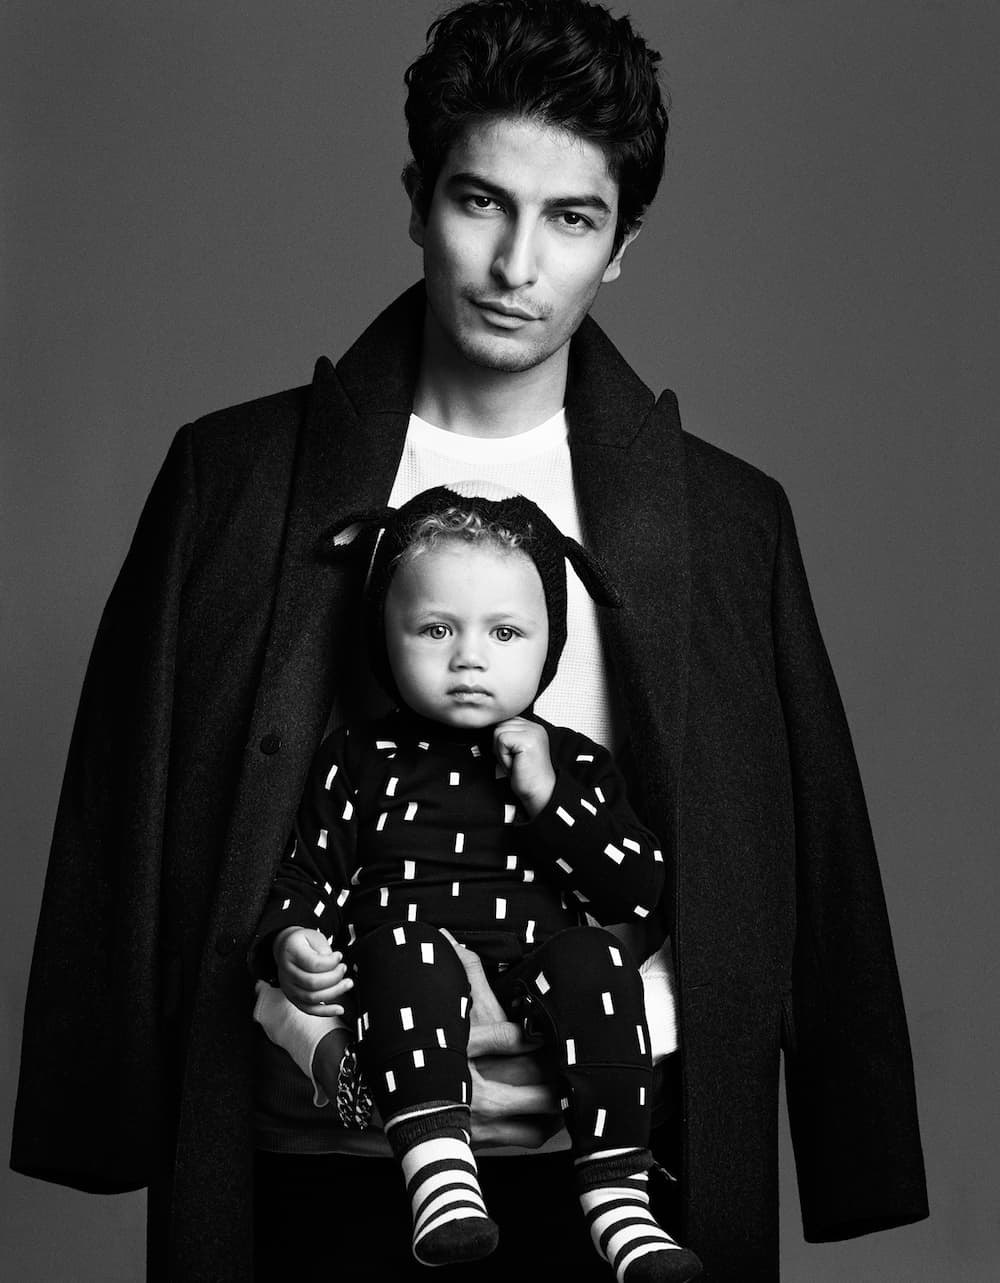 GentleMan by photographer Zoe Adlersberg & stylist Maria Walker. creating a series of striking black and white portraits of men with babies.